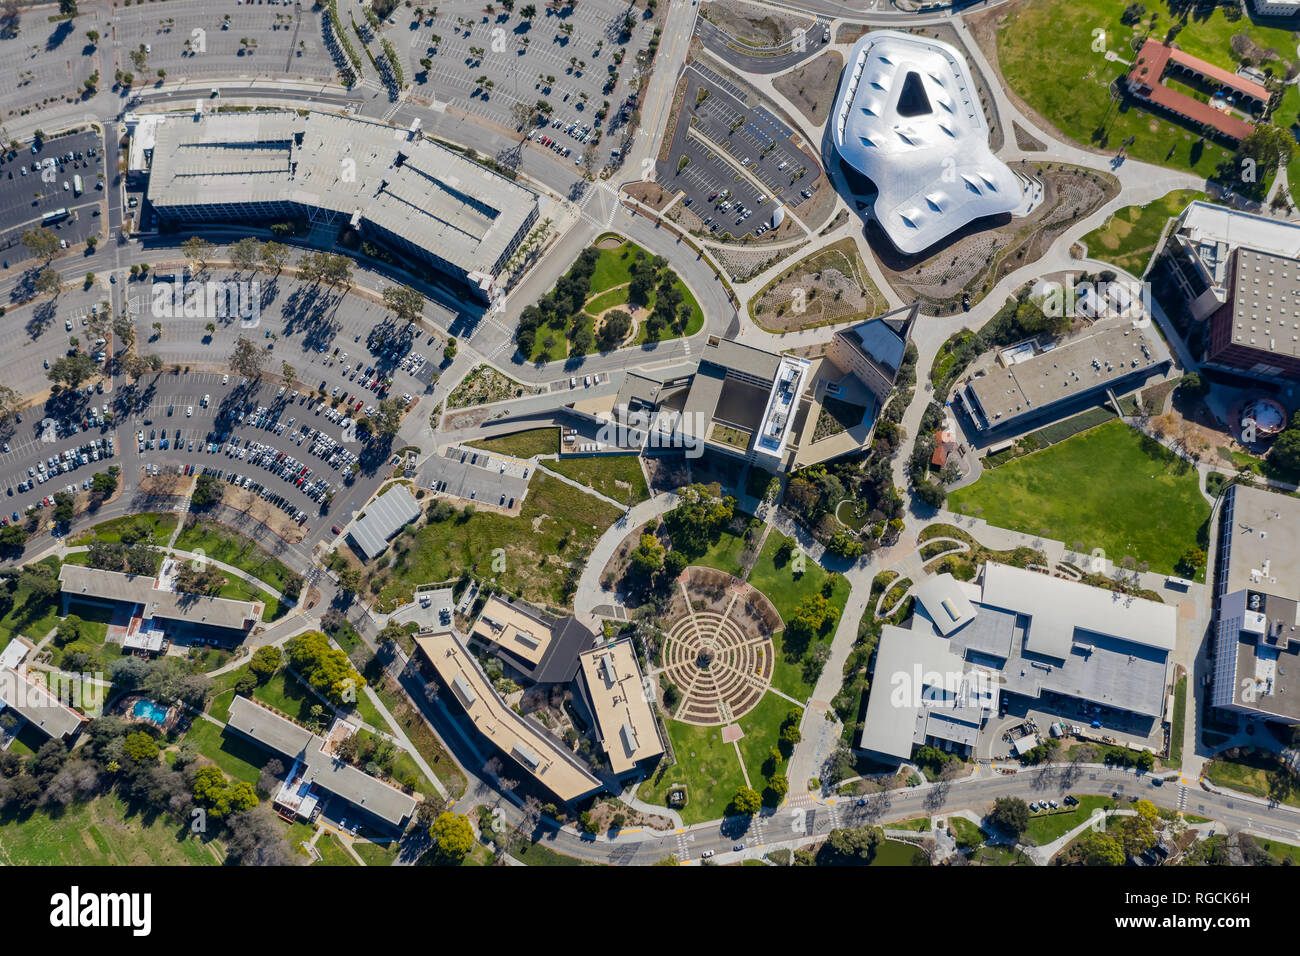 Aerial plan view of the Cal Poly Pomona campus, California - Stock Image